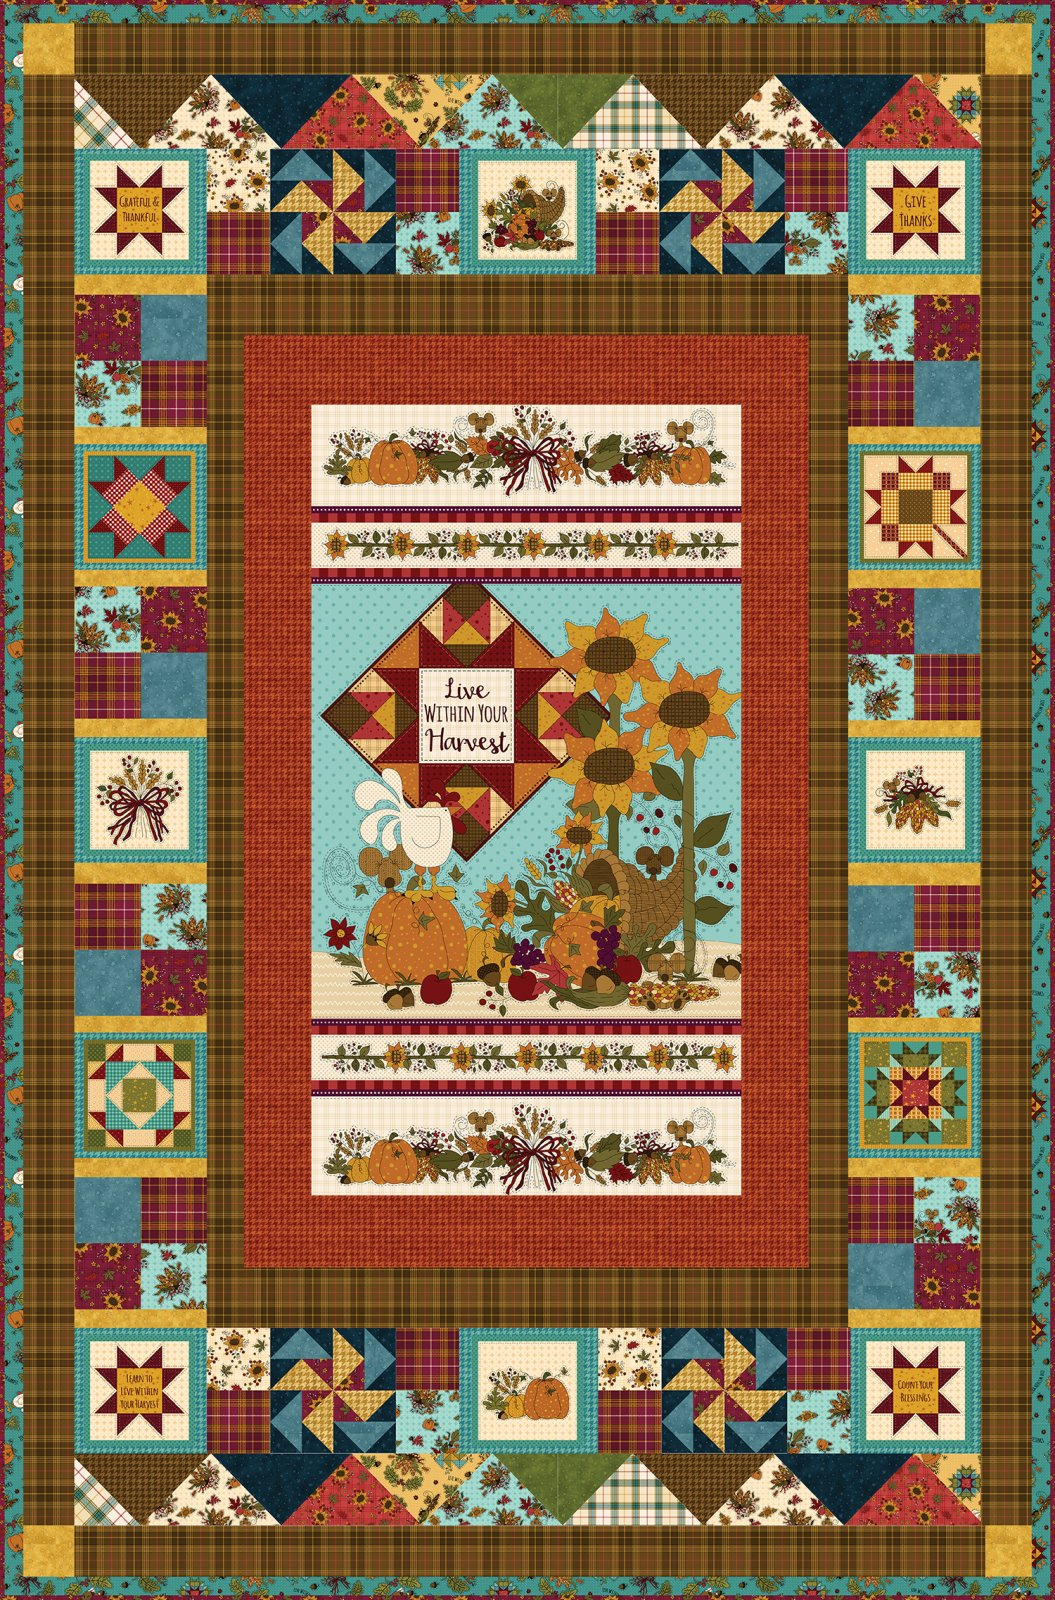 Live Within Your Harvest #1 Quilt Kit